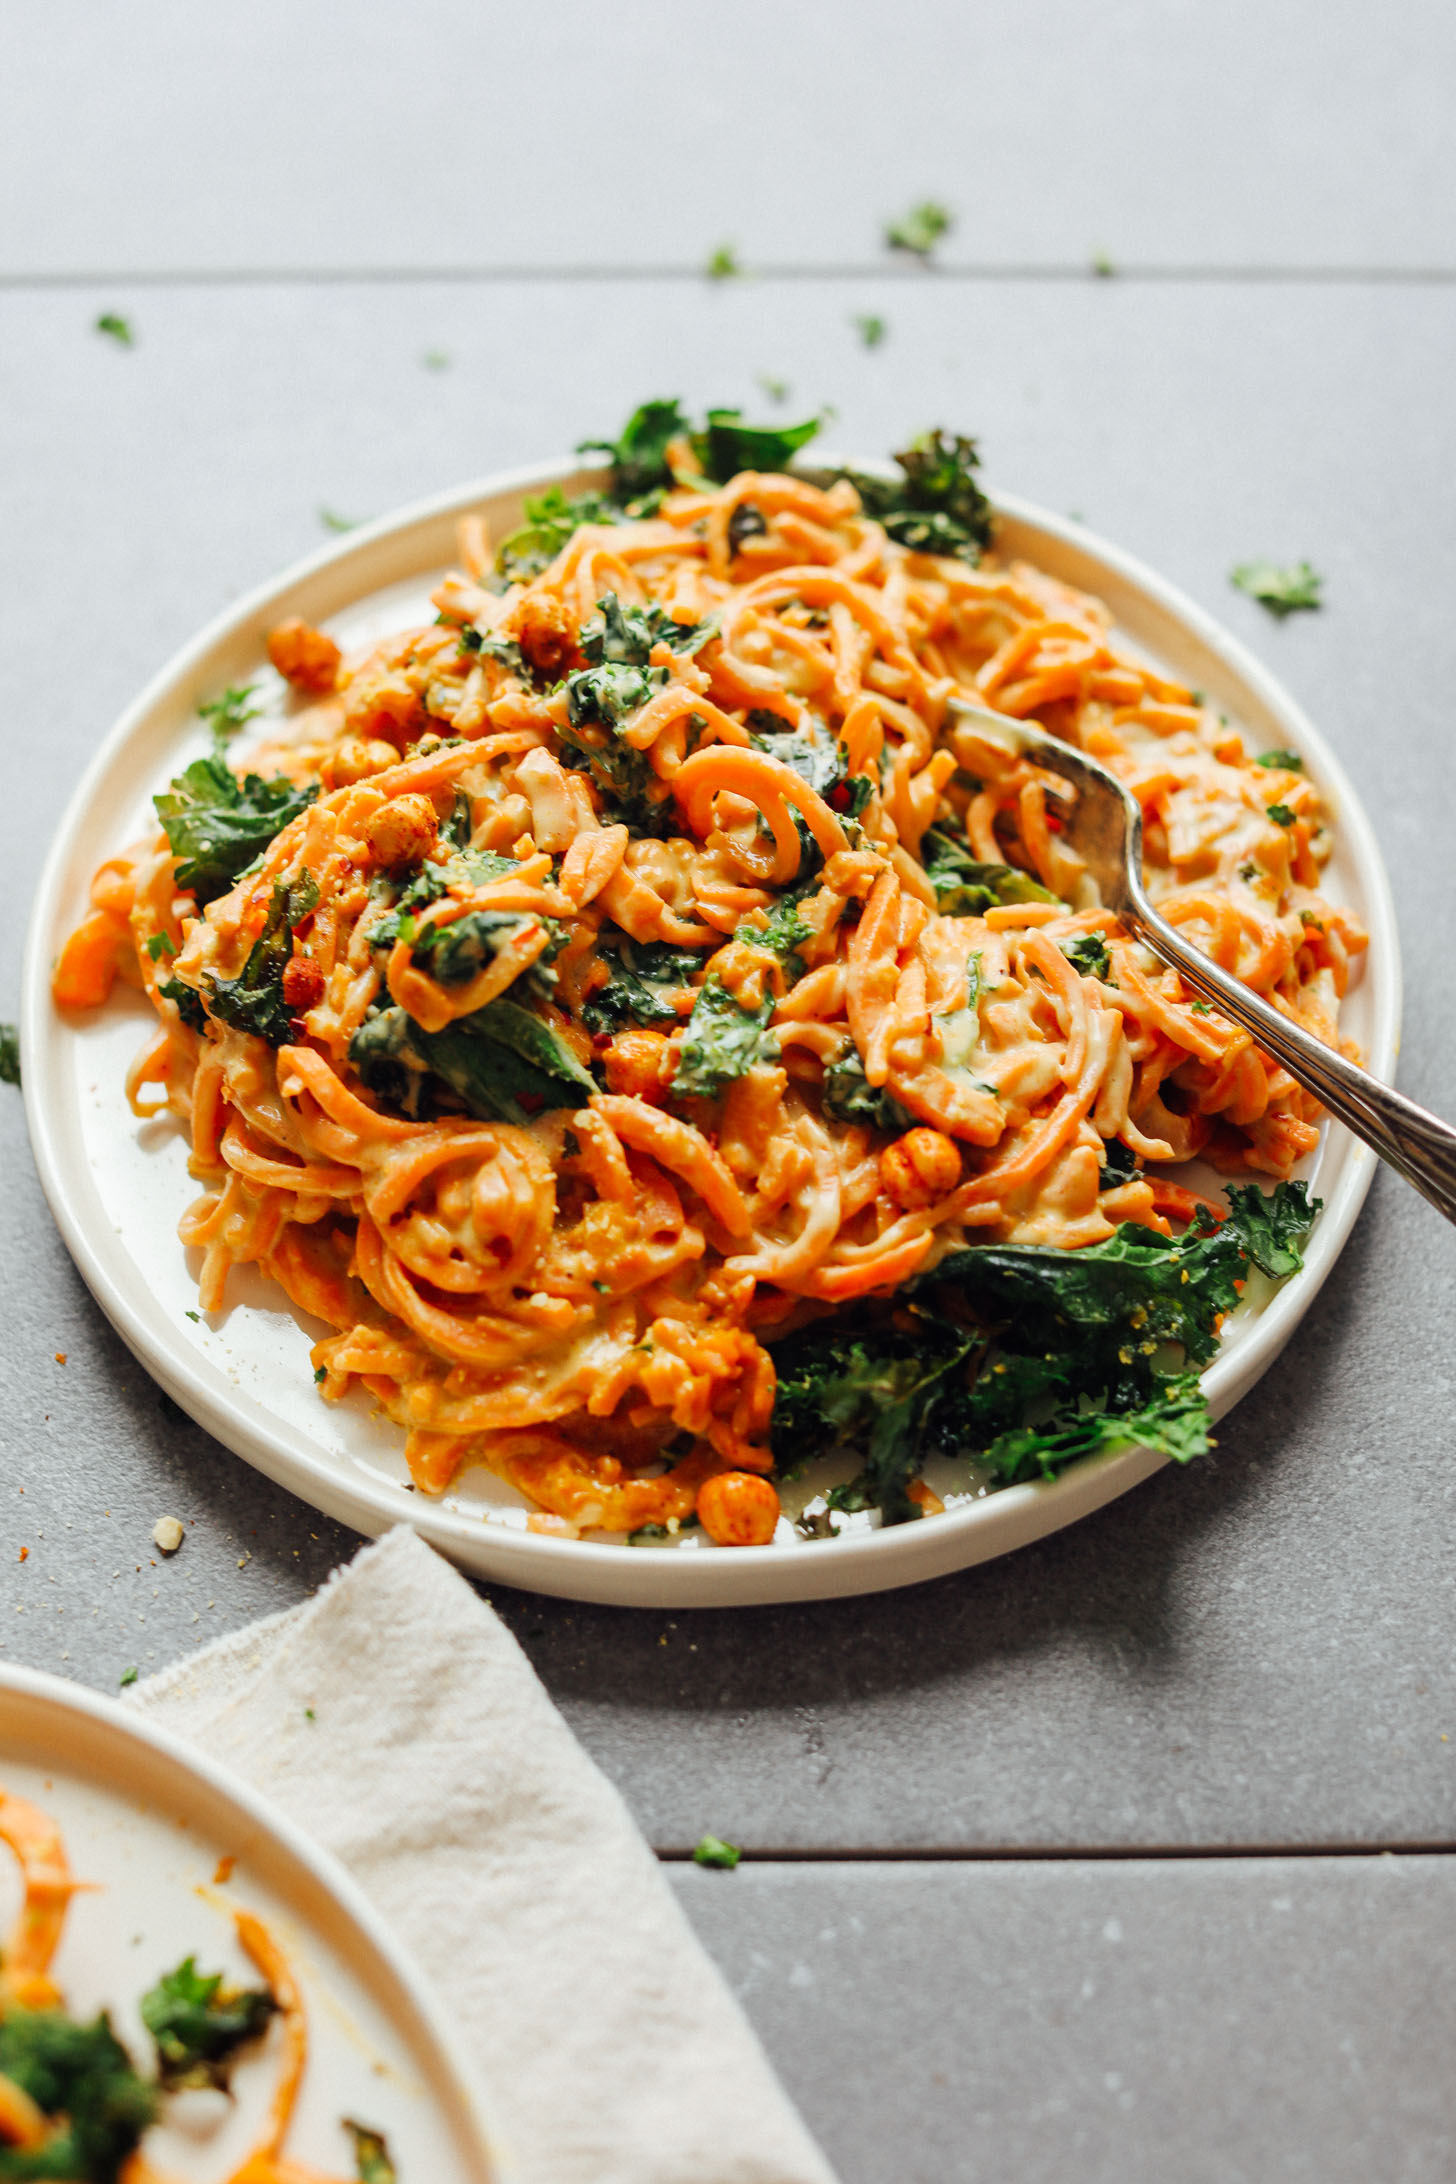 Close up shot of a plate of Garlicky Sweet Potato Pasta with Crispy Kale for a simple gluten-free vegan meal